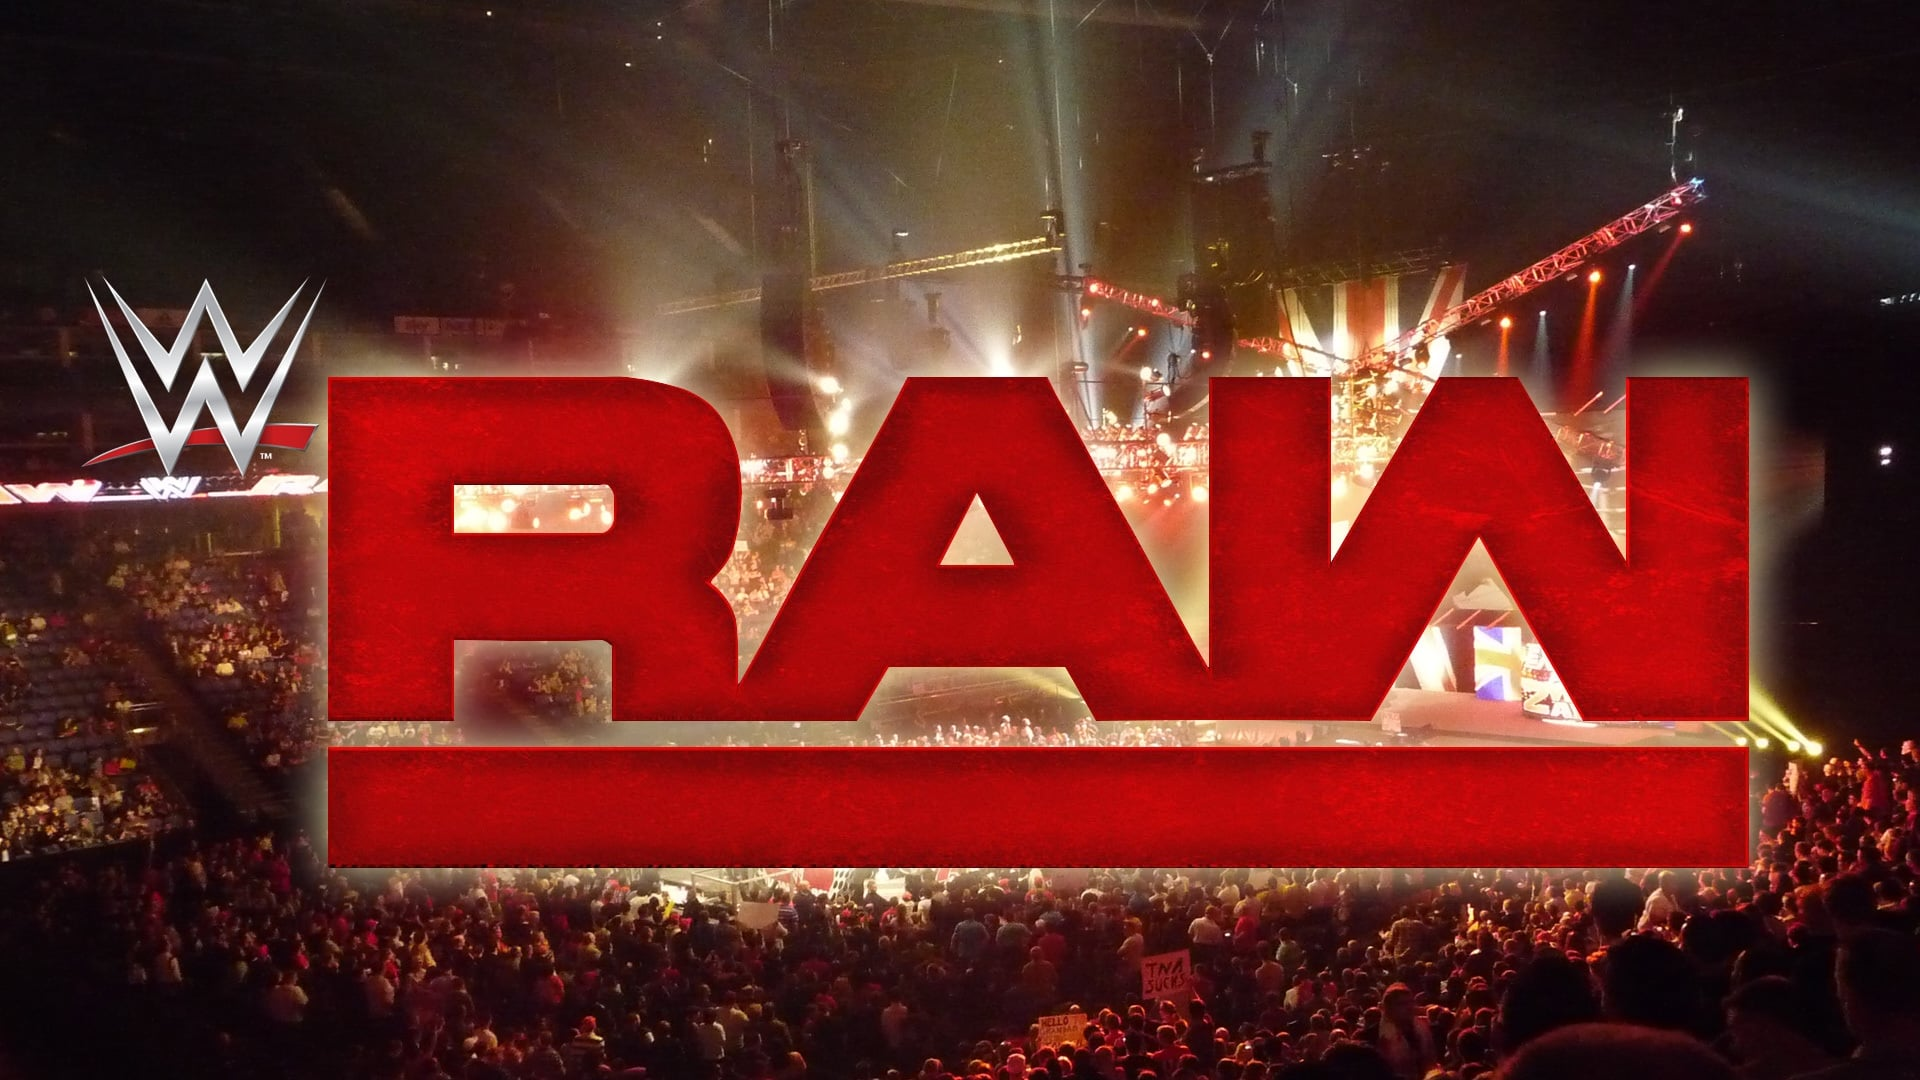 WWE Raw - Season 5 Episode 31 : RAW is WAR 221